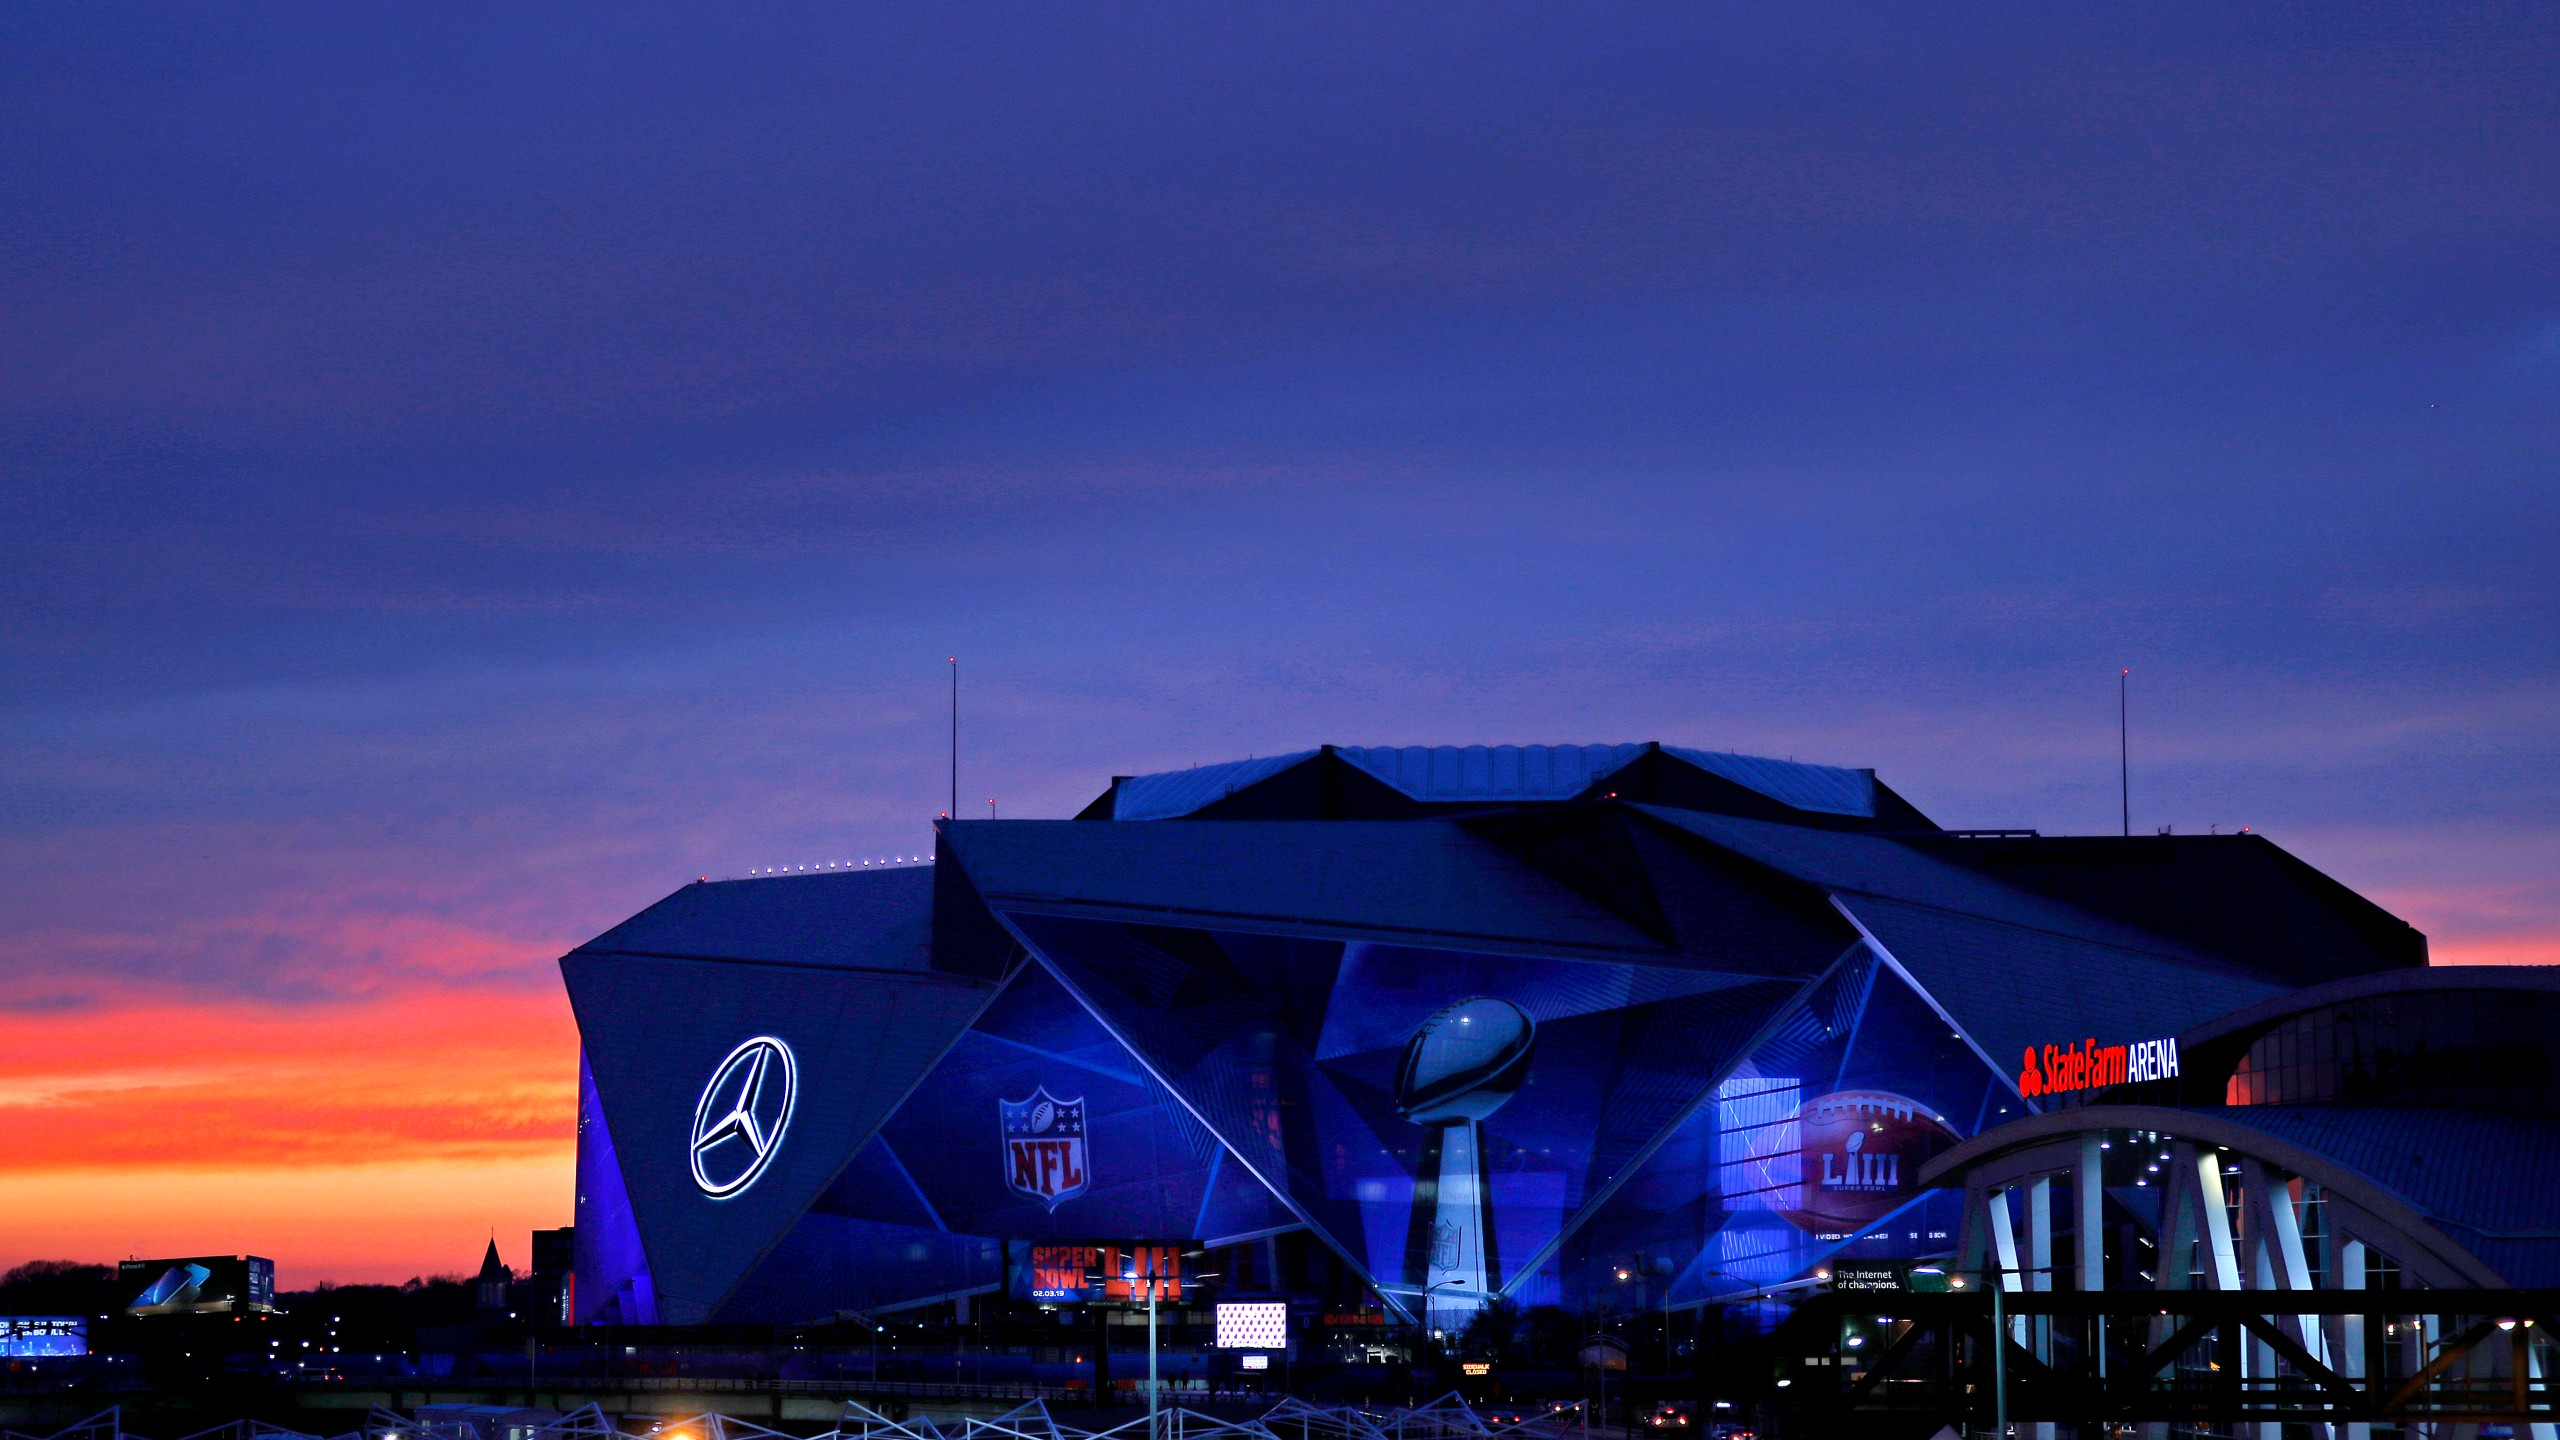 An exterior view of the Mercedes-Benz Stadium is seen on January 27, 2019 in Atlanta, Georgia. (Credit: Justin Heiman/Getty Images)